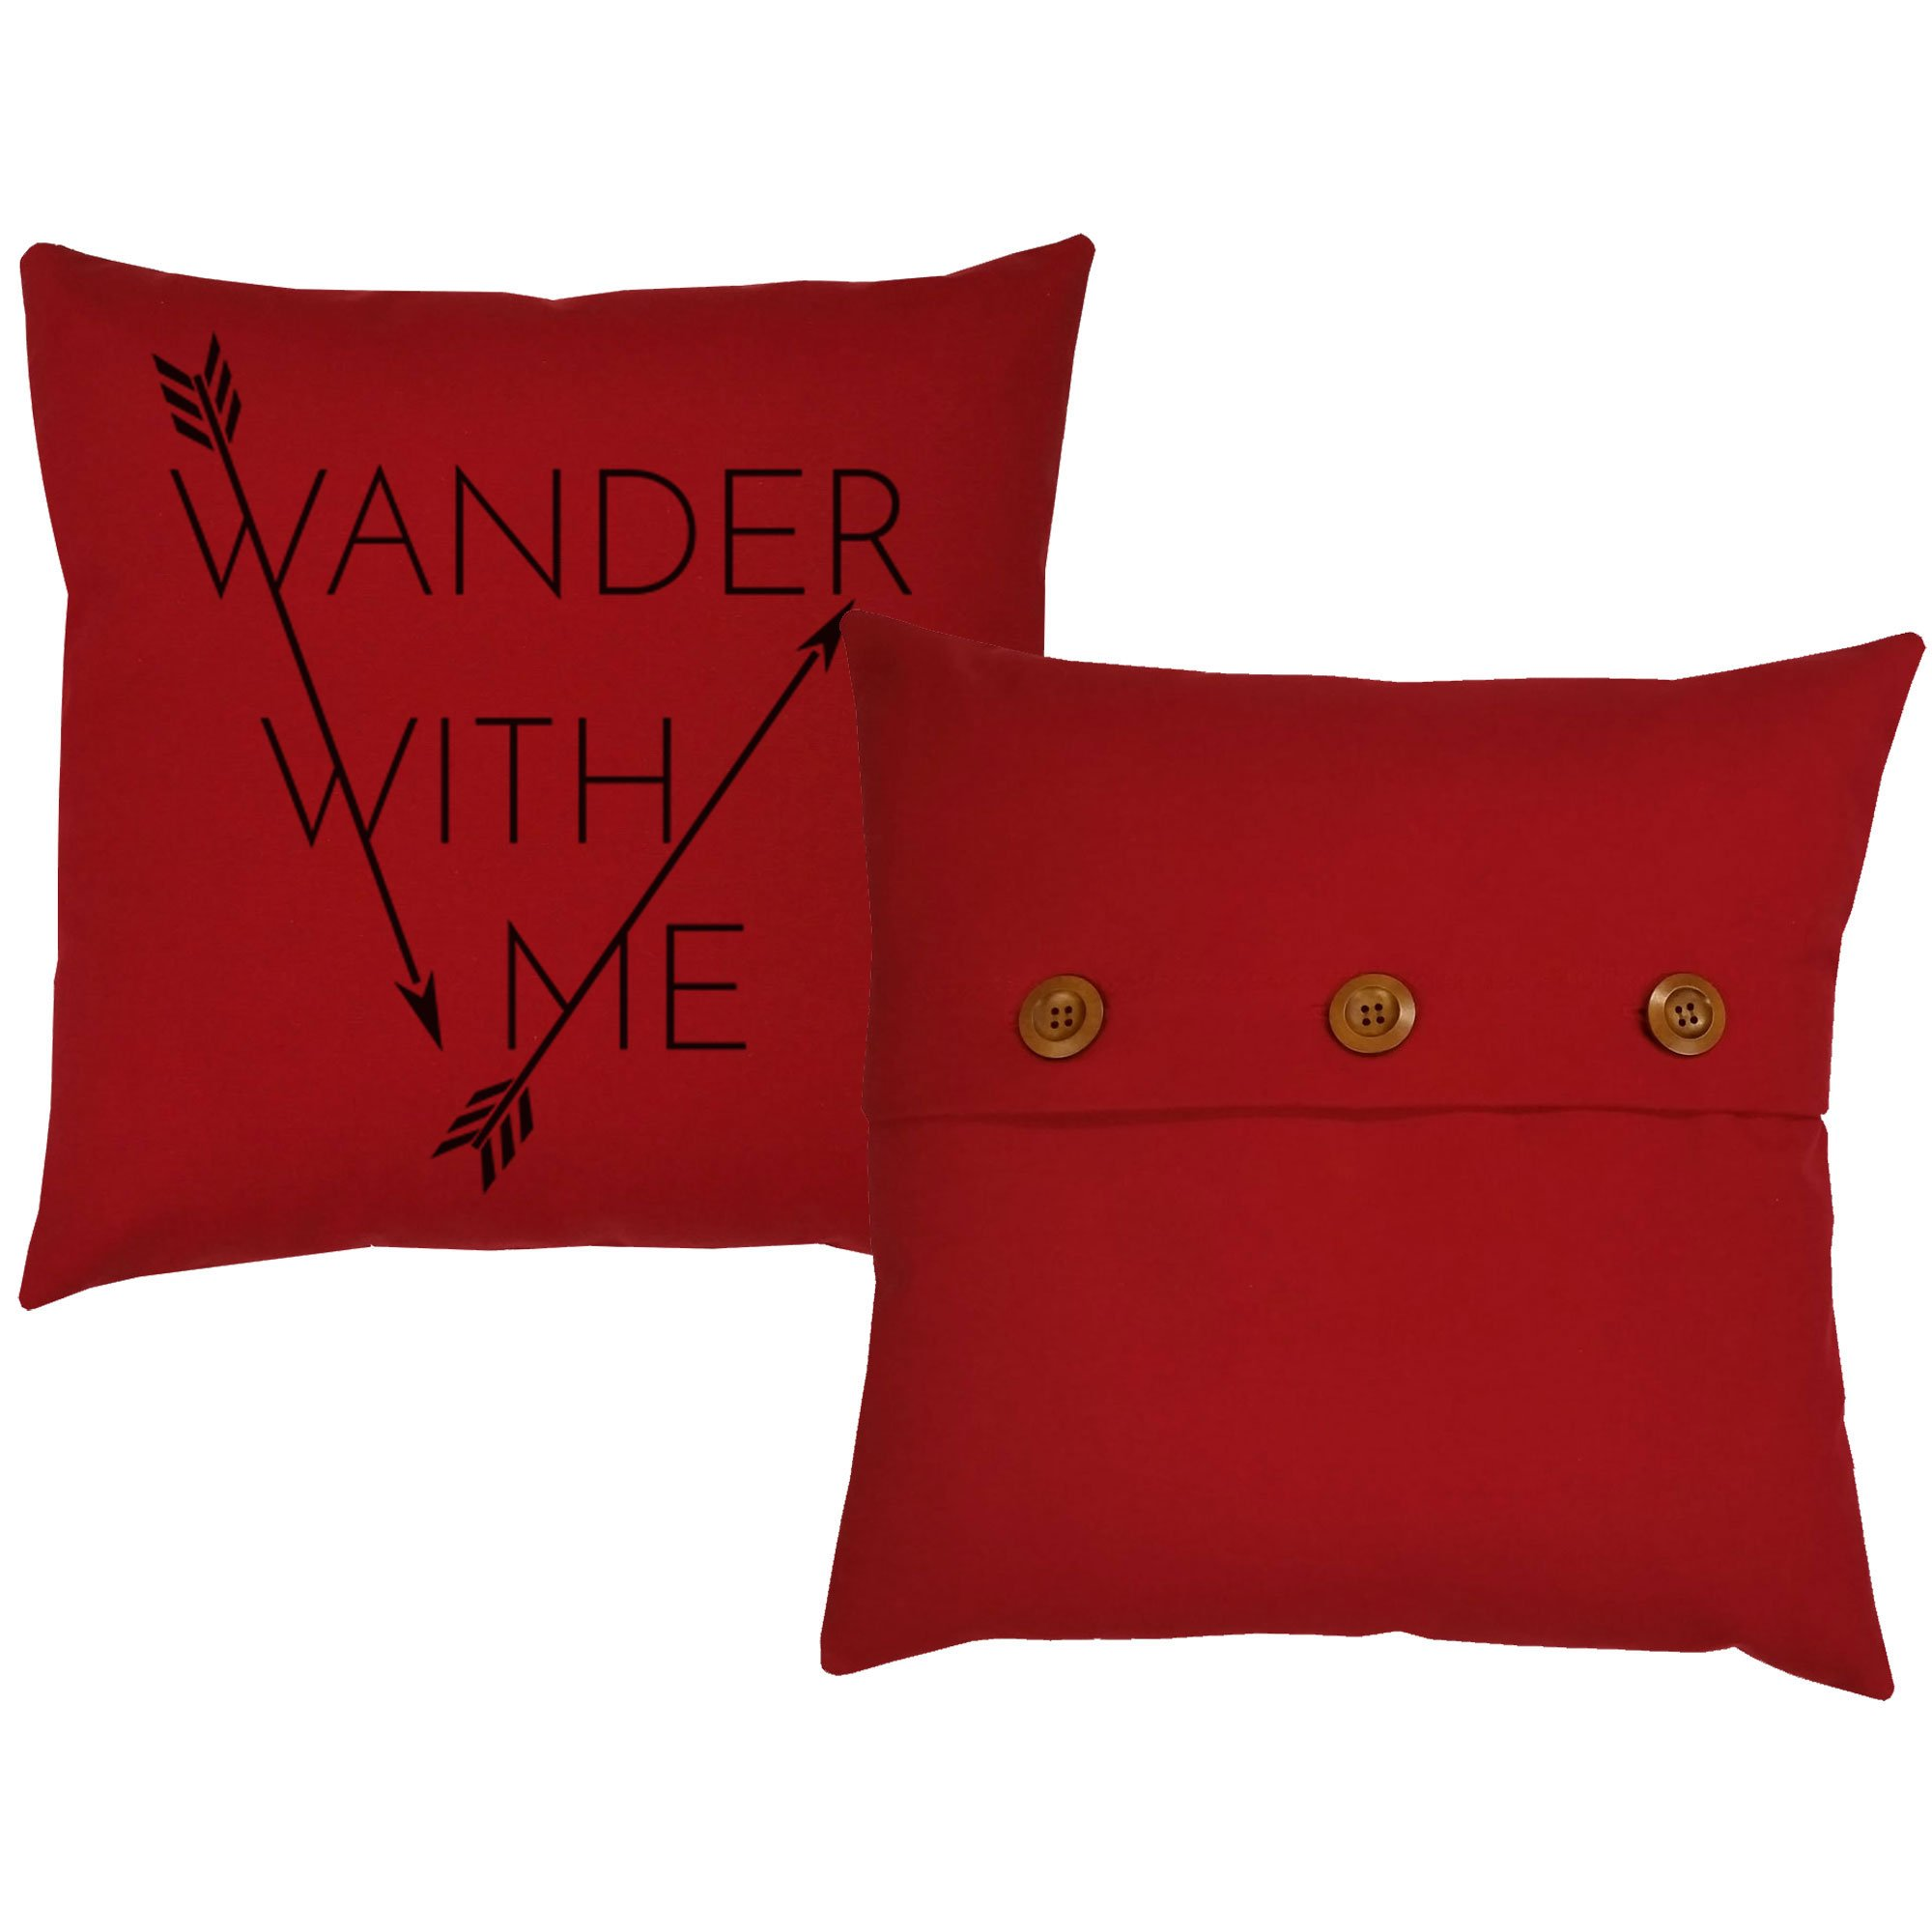 Set of 2 RoomCraft Wander With Me Through the Woods Throw Pillows 20x20 Square Red Indoor-Outdoor Cushions by RoomCraft (Image #4)